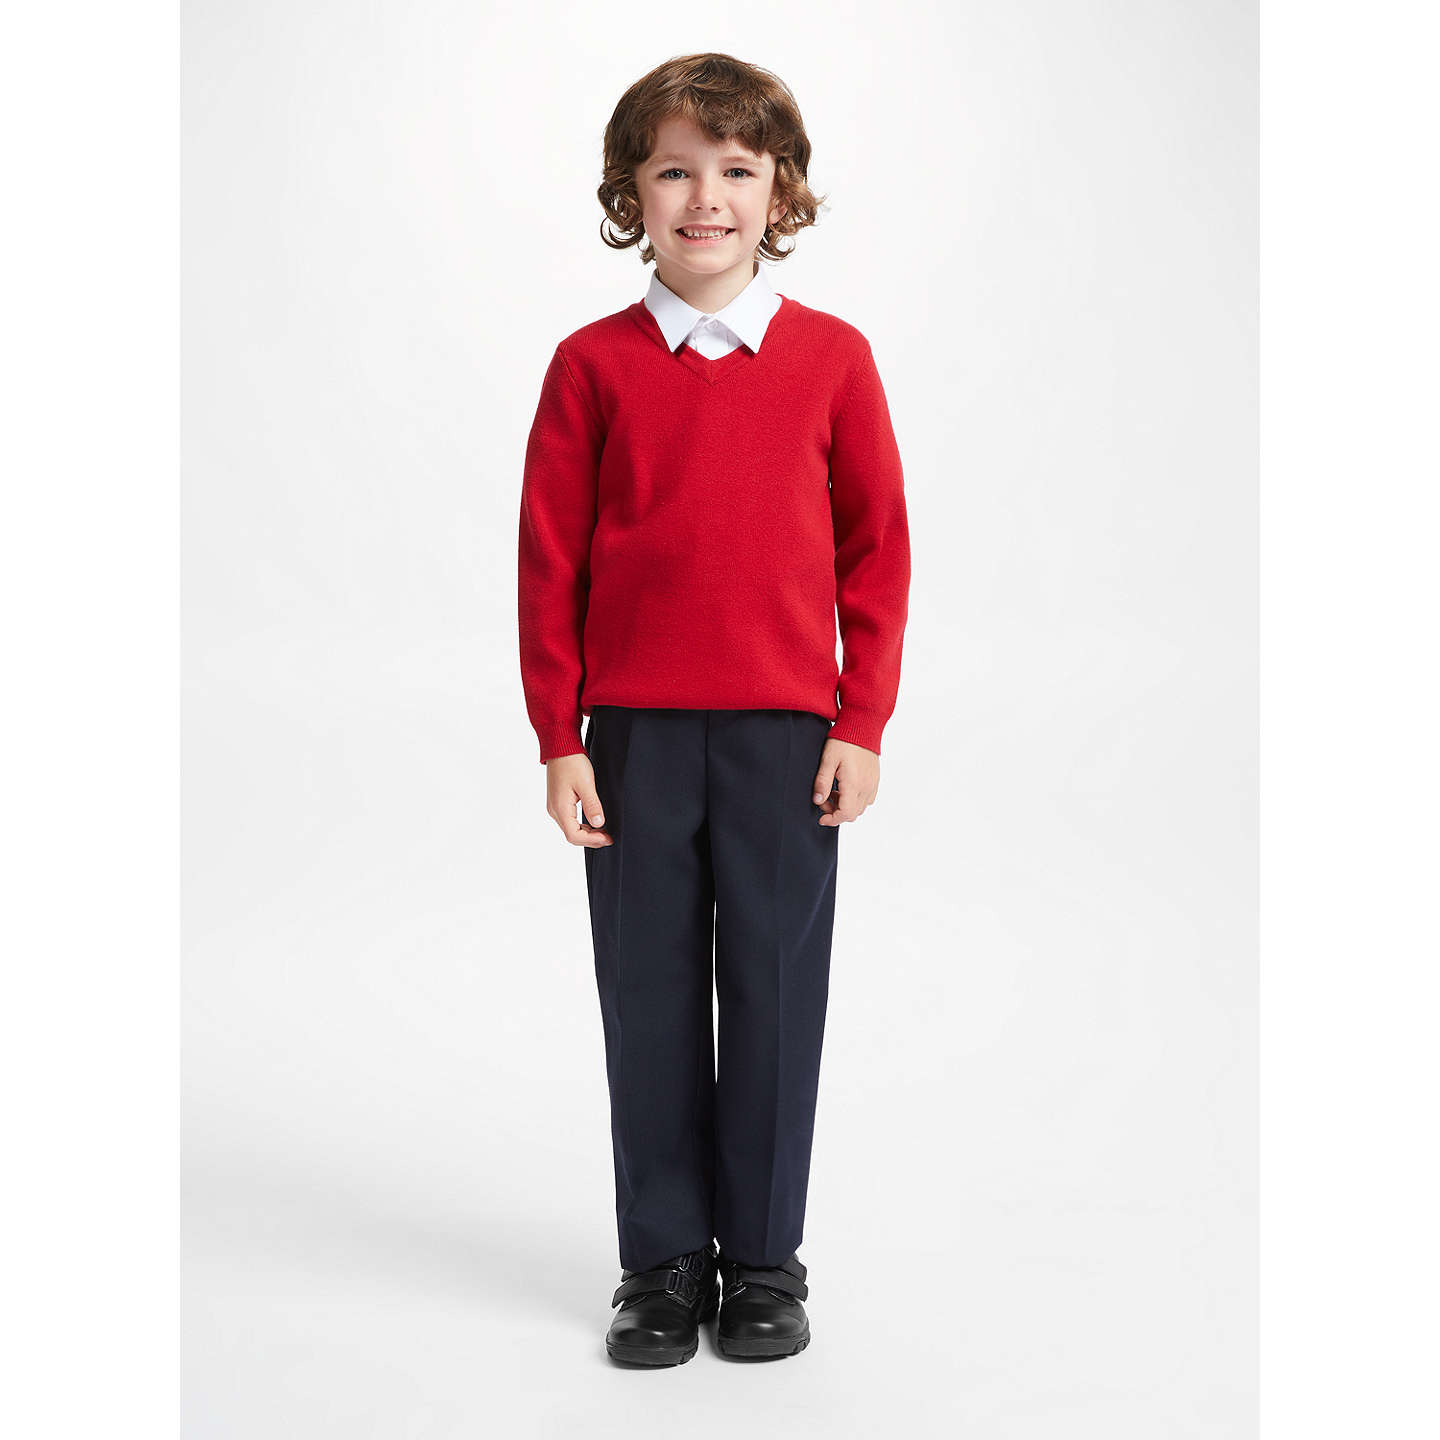 BuyJohn Lewis Boys' Regular Fit Easy Care School Trousers, Navy, 3 yrs Online at johnlewis.com